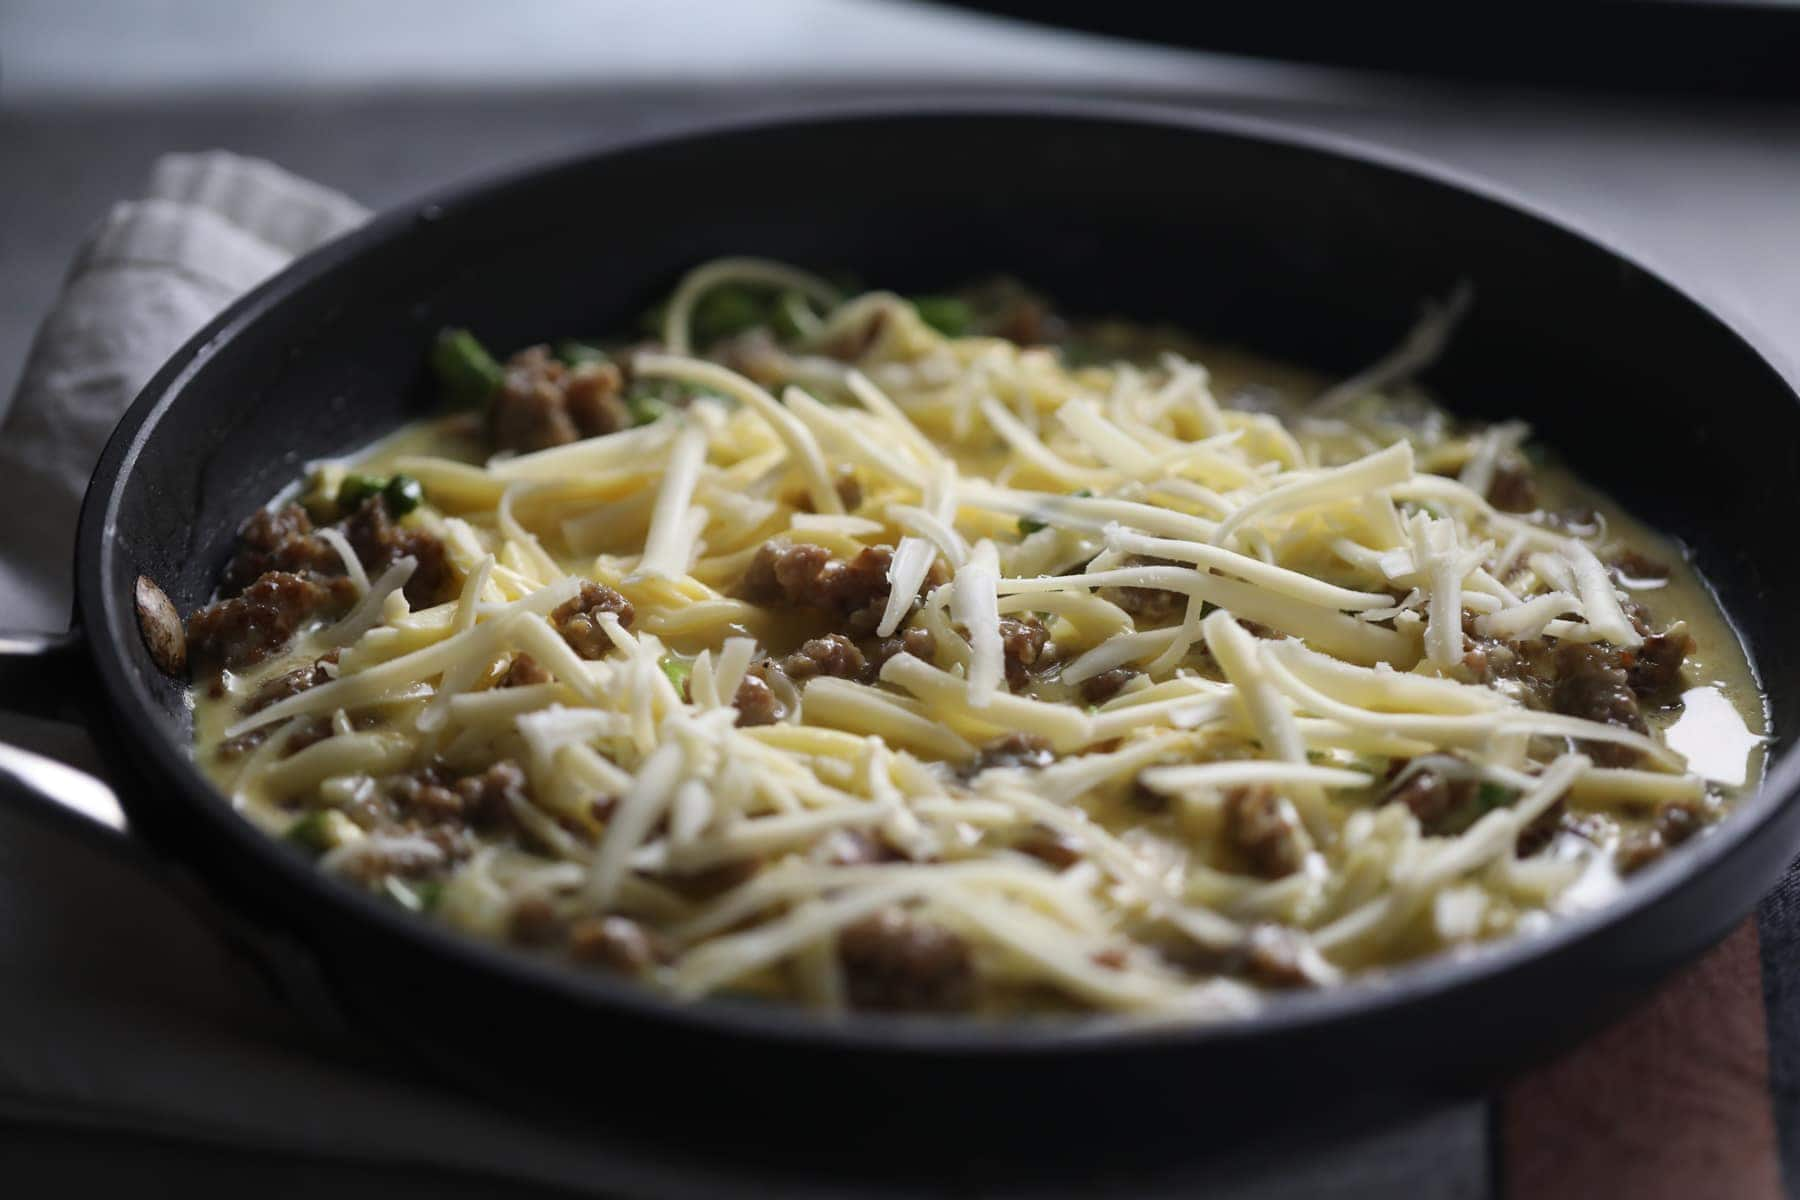 grated cheese on top of mixture